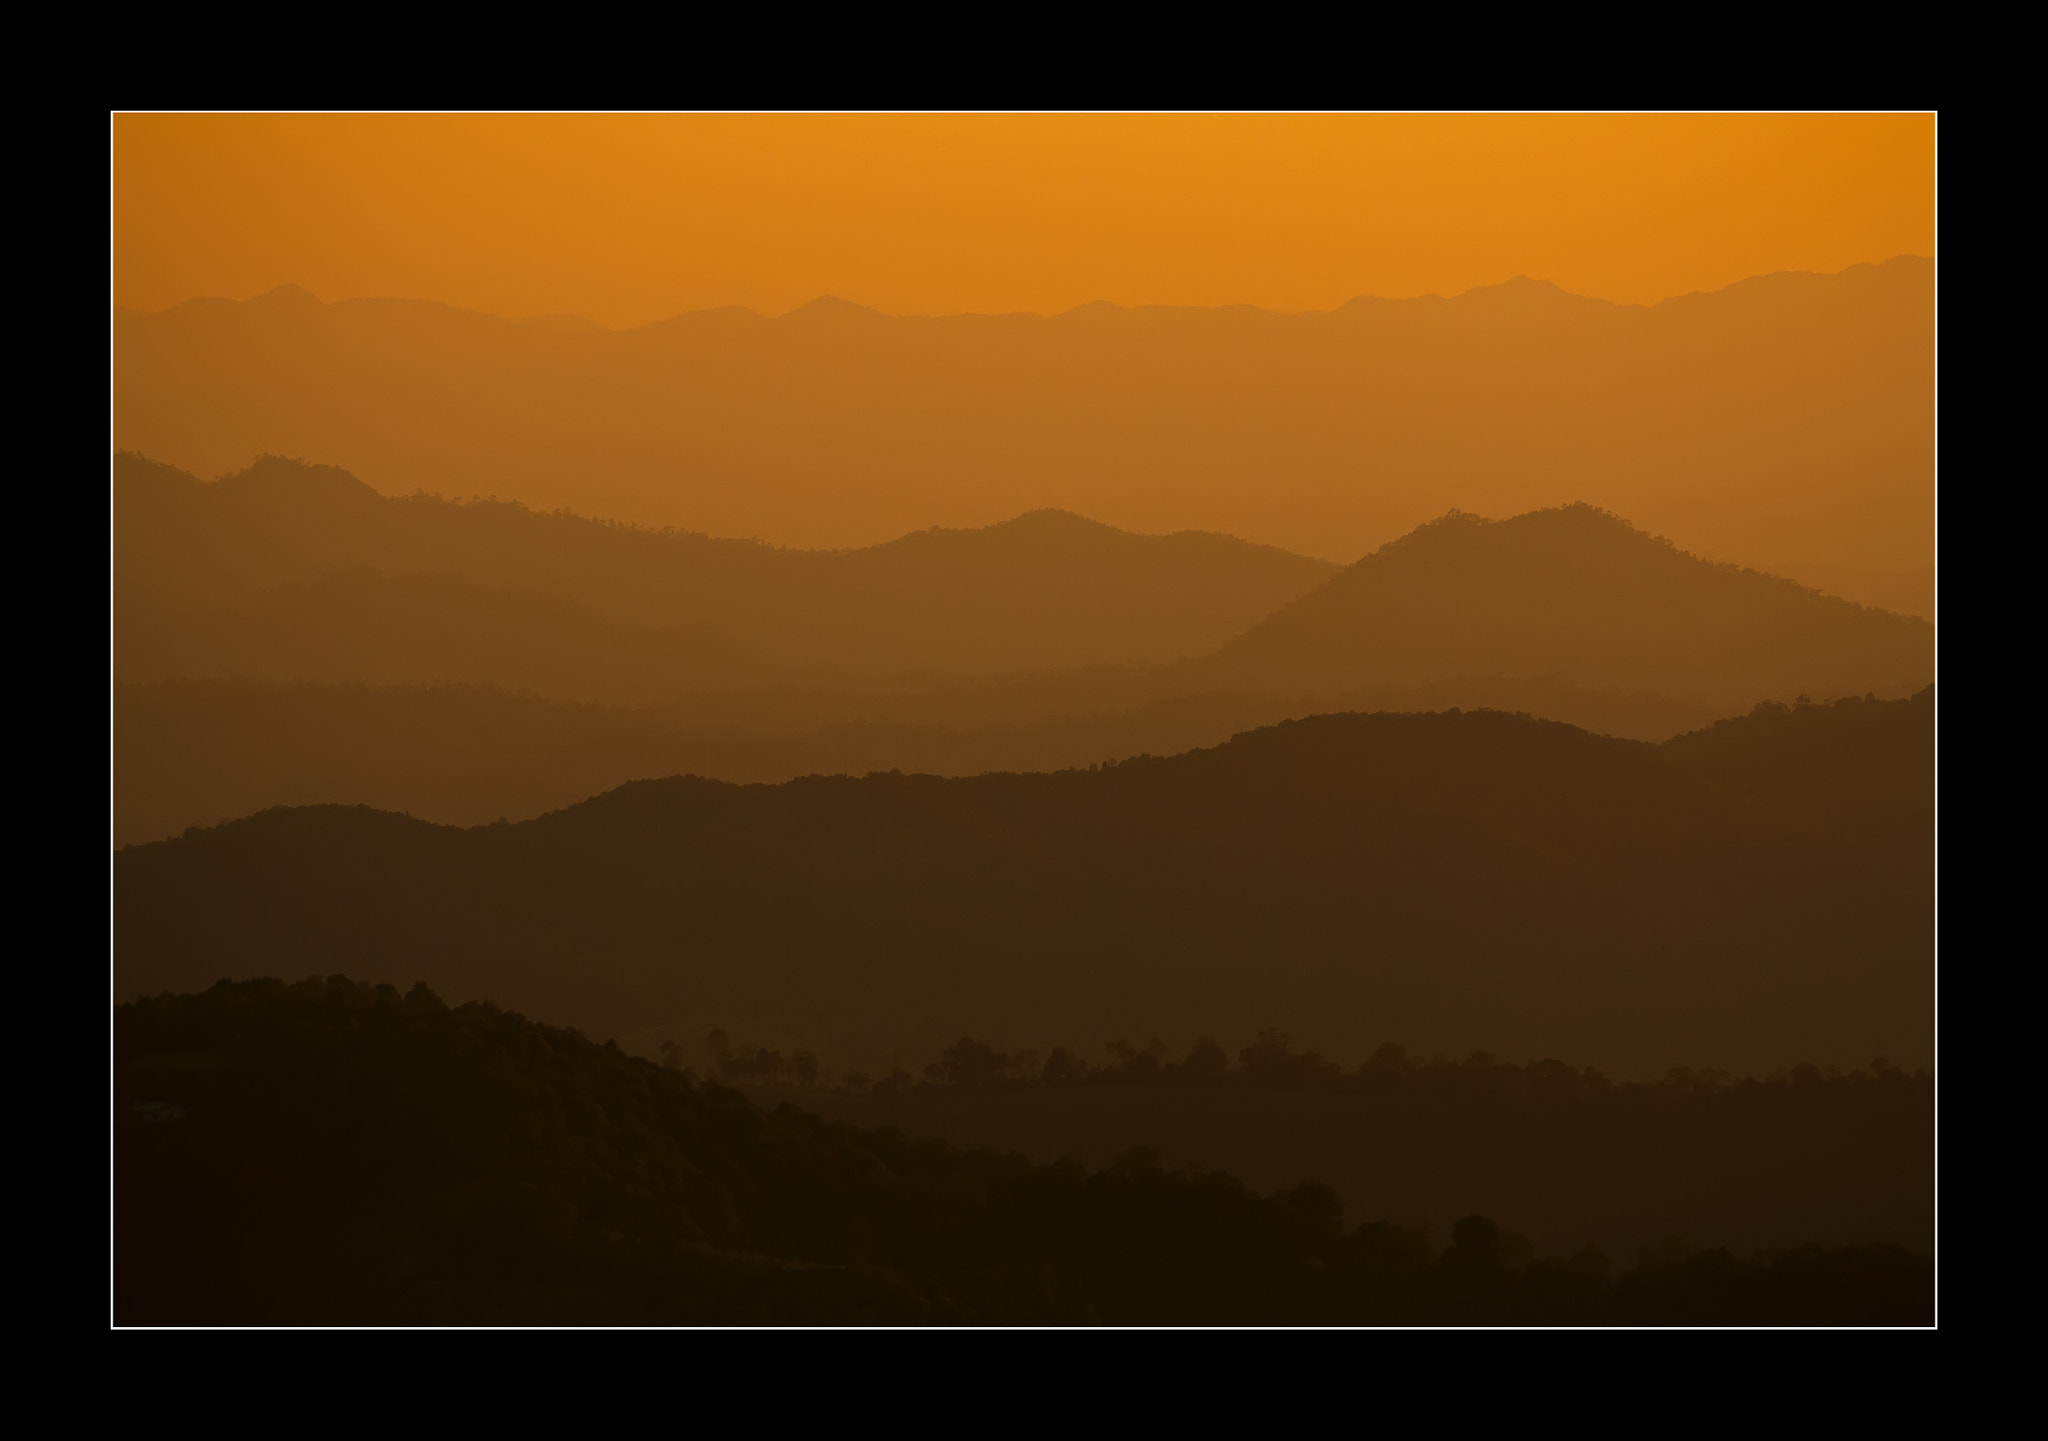 Photograph Layers by F D on 500px